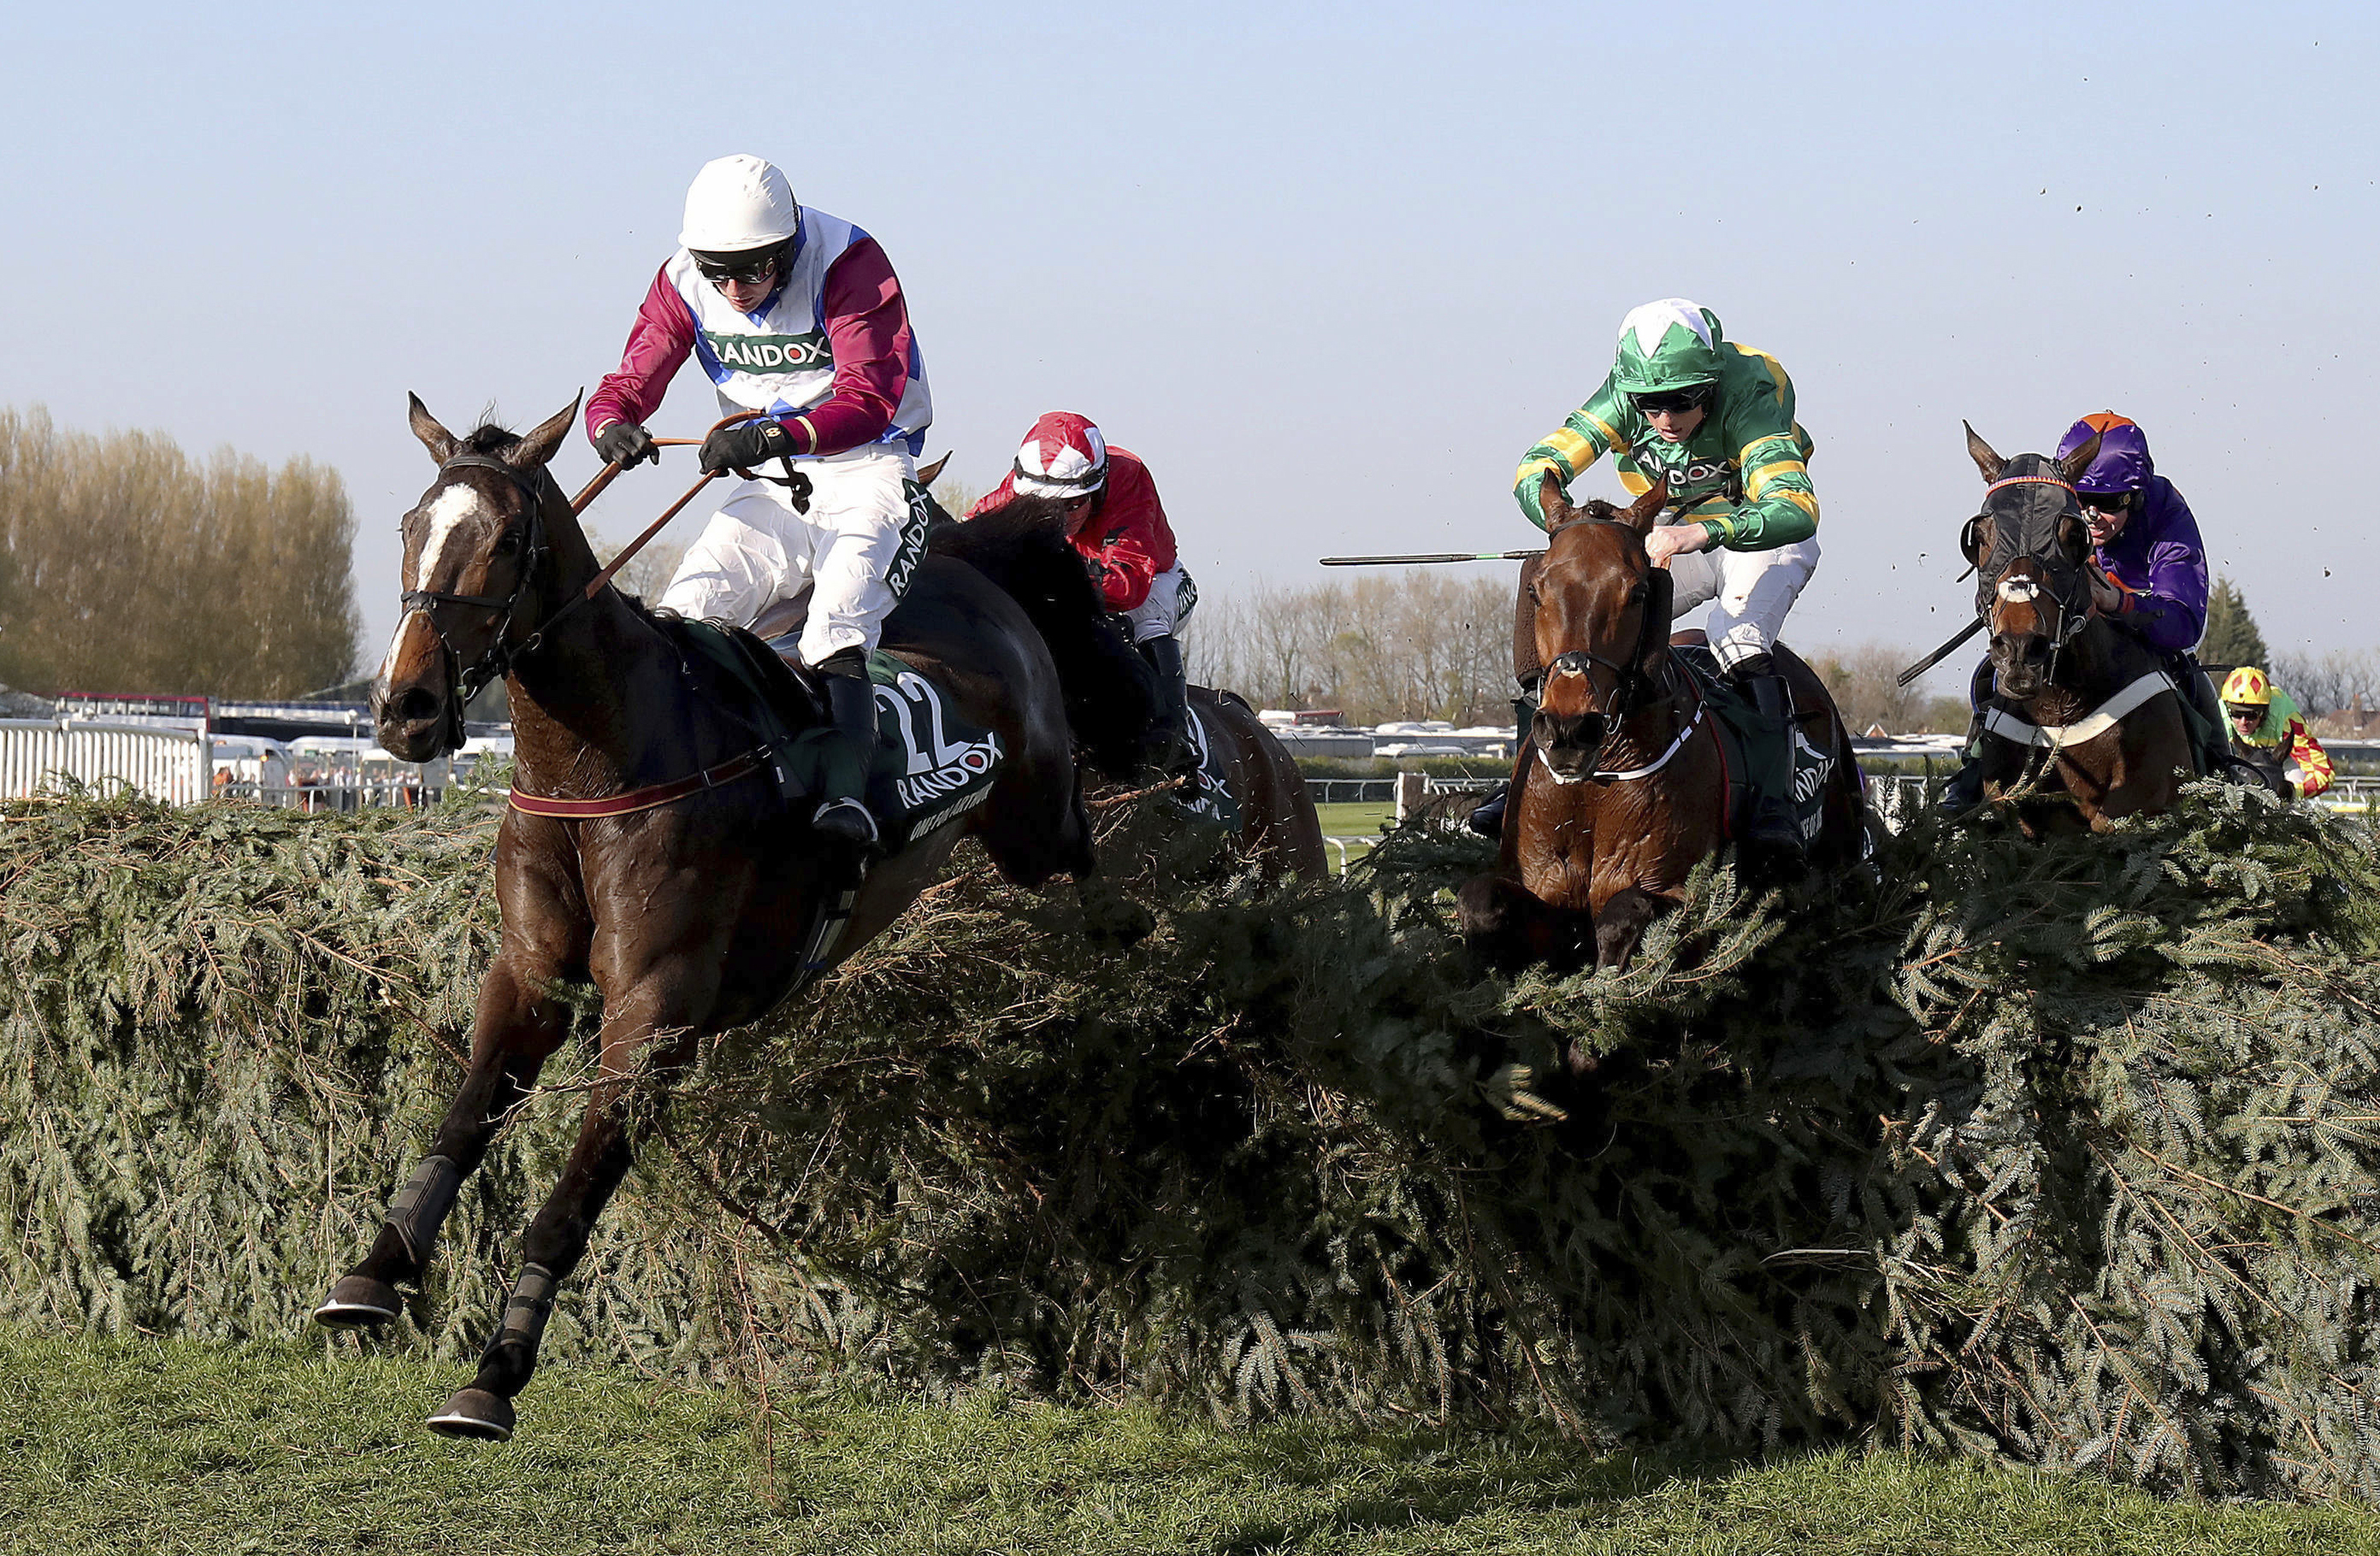 One For Arthur ridden by jockey Derek Fox jumps the last on the way to winning the Grand National horse race at Aintree Racecourse in Liverpool, England, Saturday April 8. (David Davies/PA via AP)